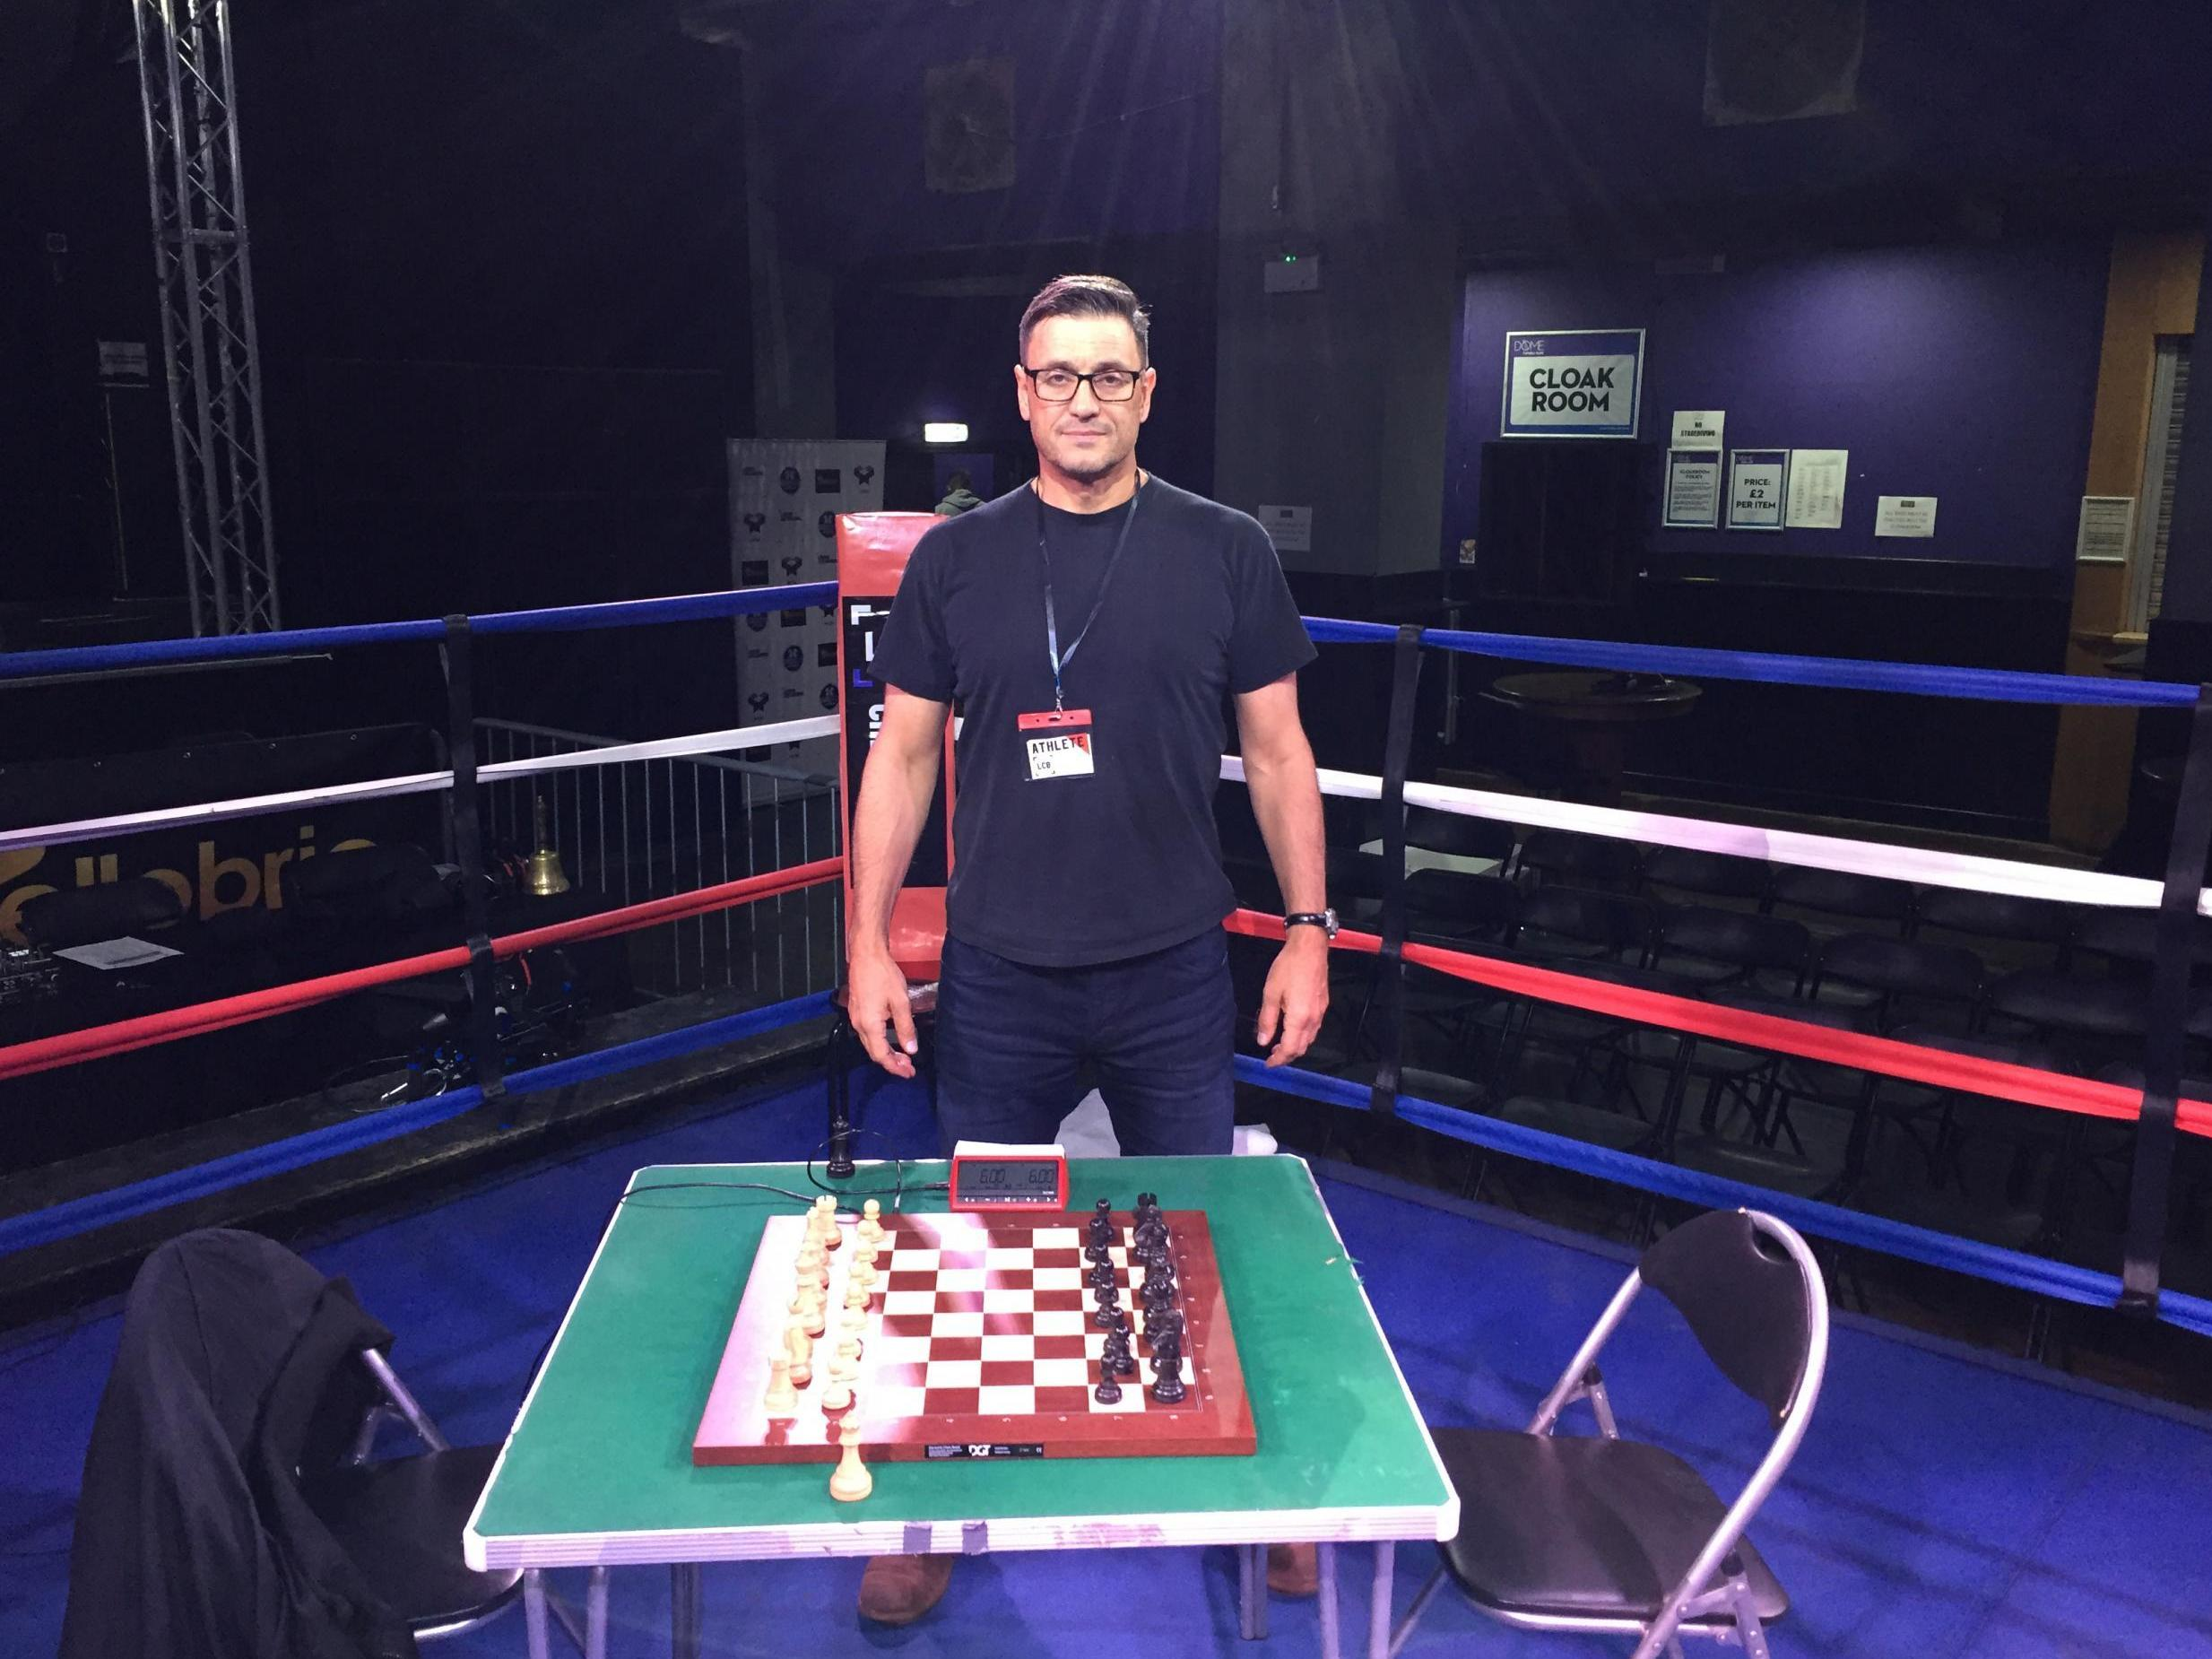 Welcome to chessboxing, the ultimate battle of physical and mental prowess